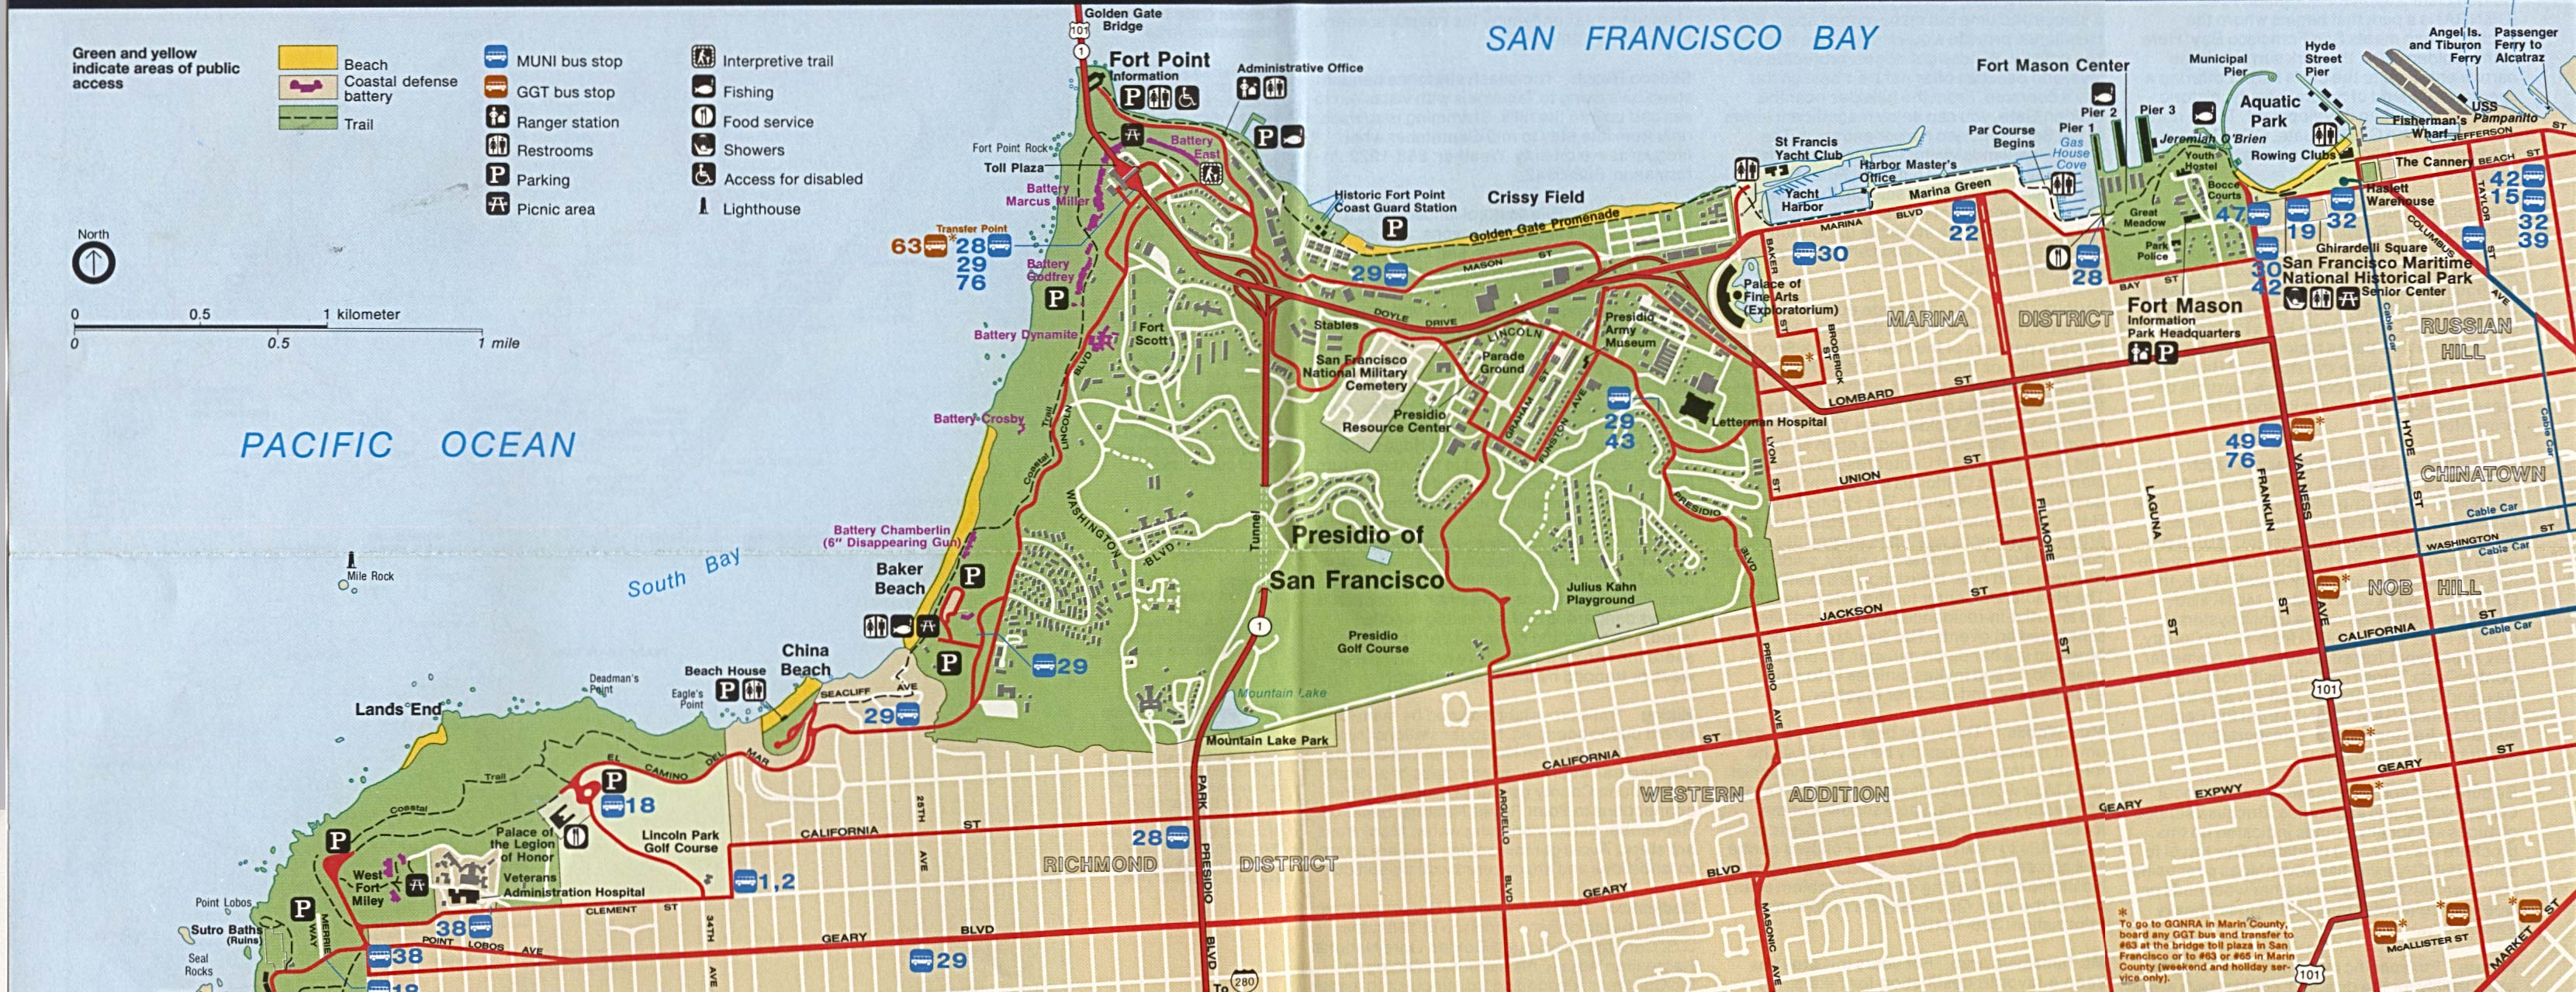 Maps of United States National Parks, Monuments and Historic Sites Golden Gate National Recreation Area - Northern [California] (Park Map) 1995 (705K)